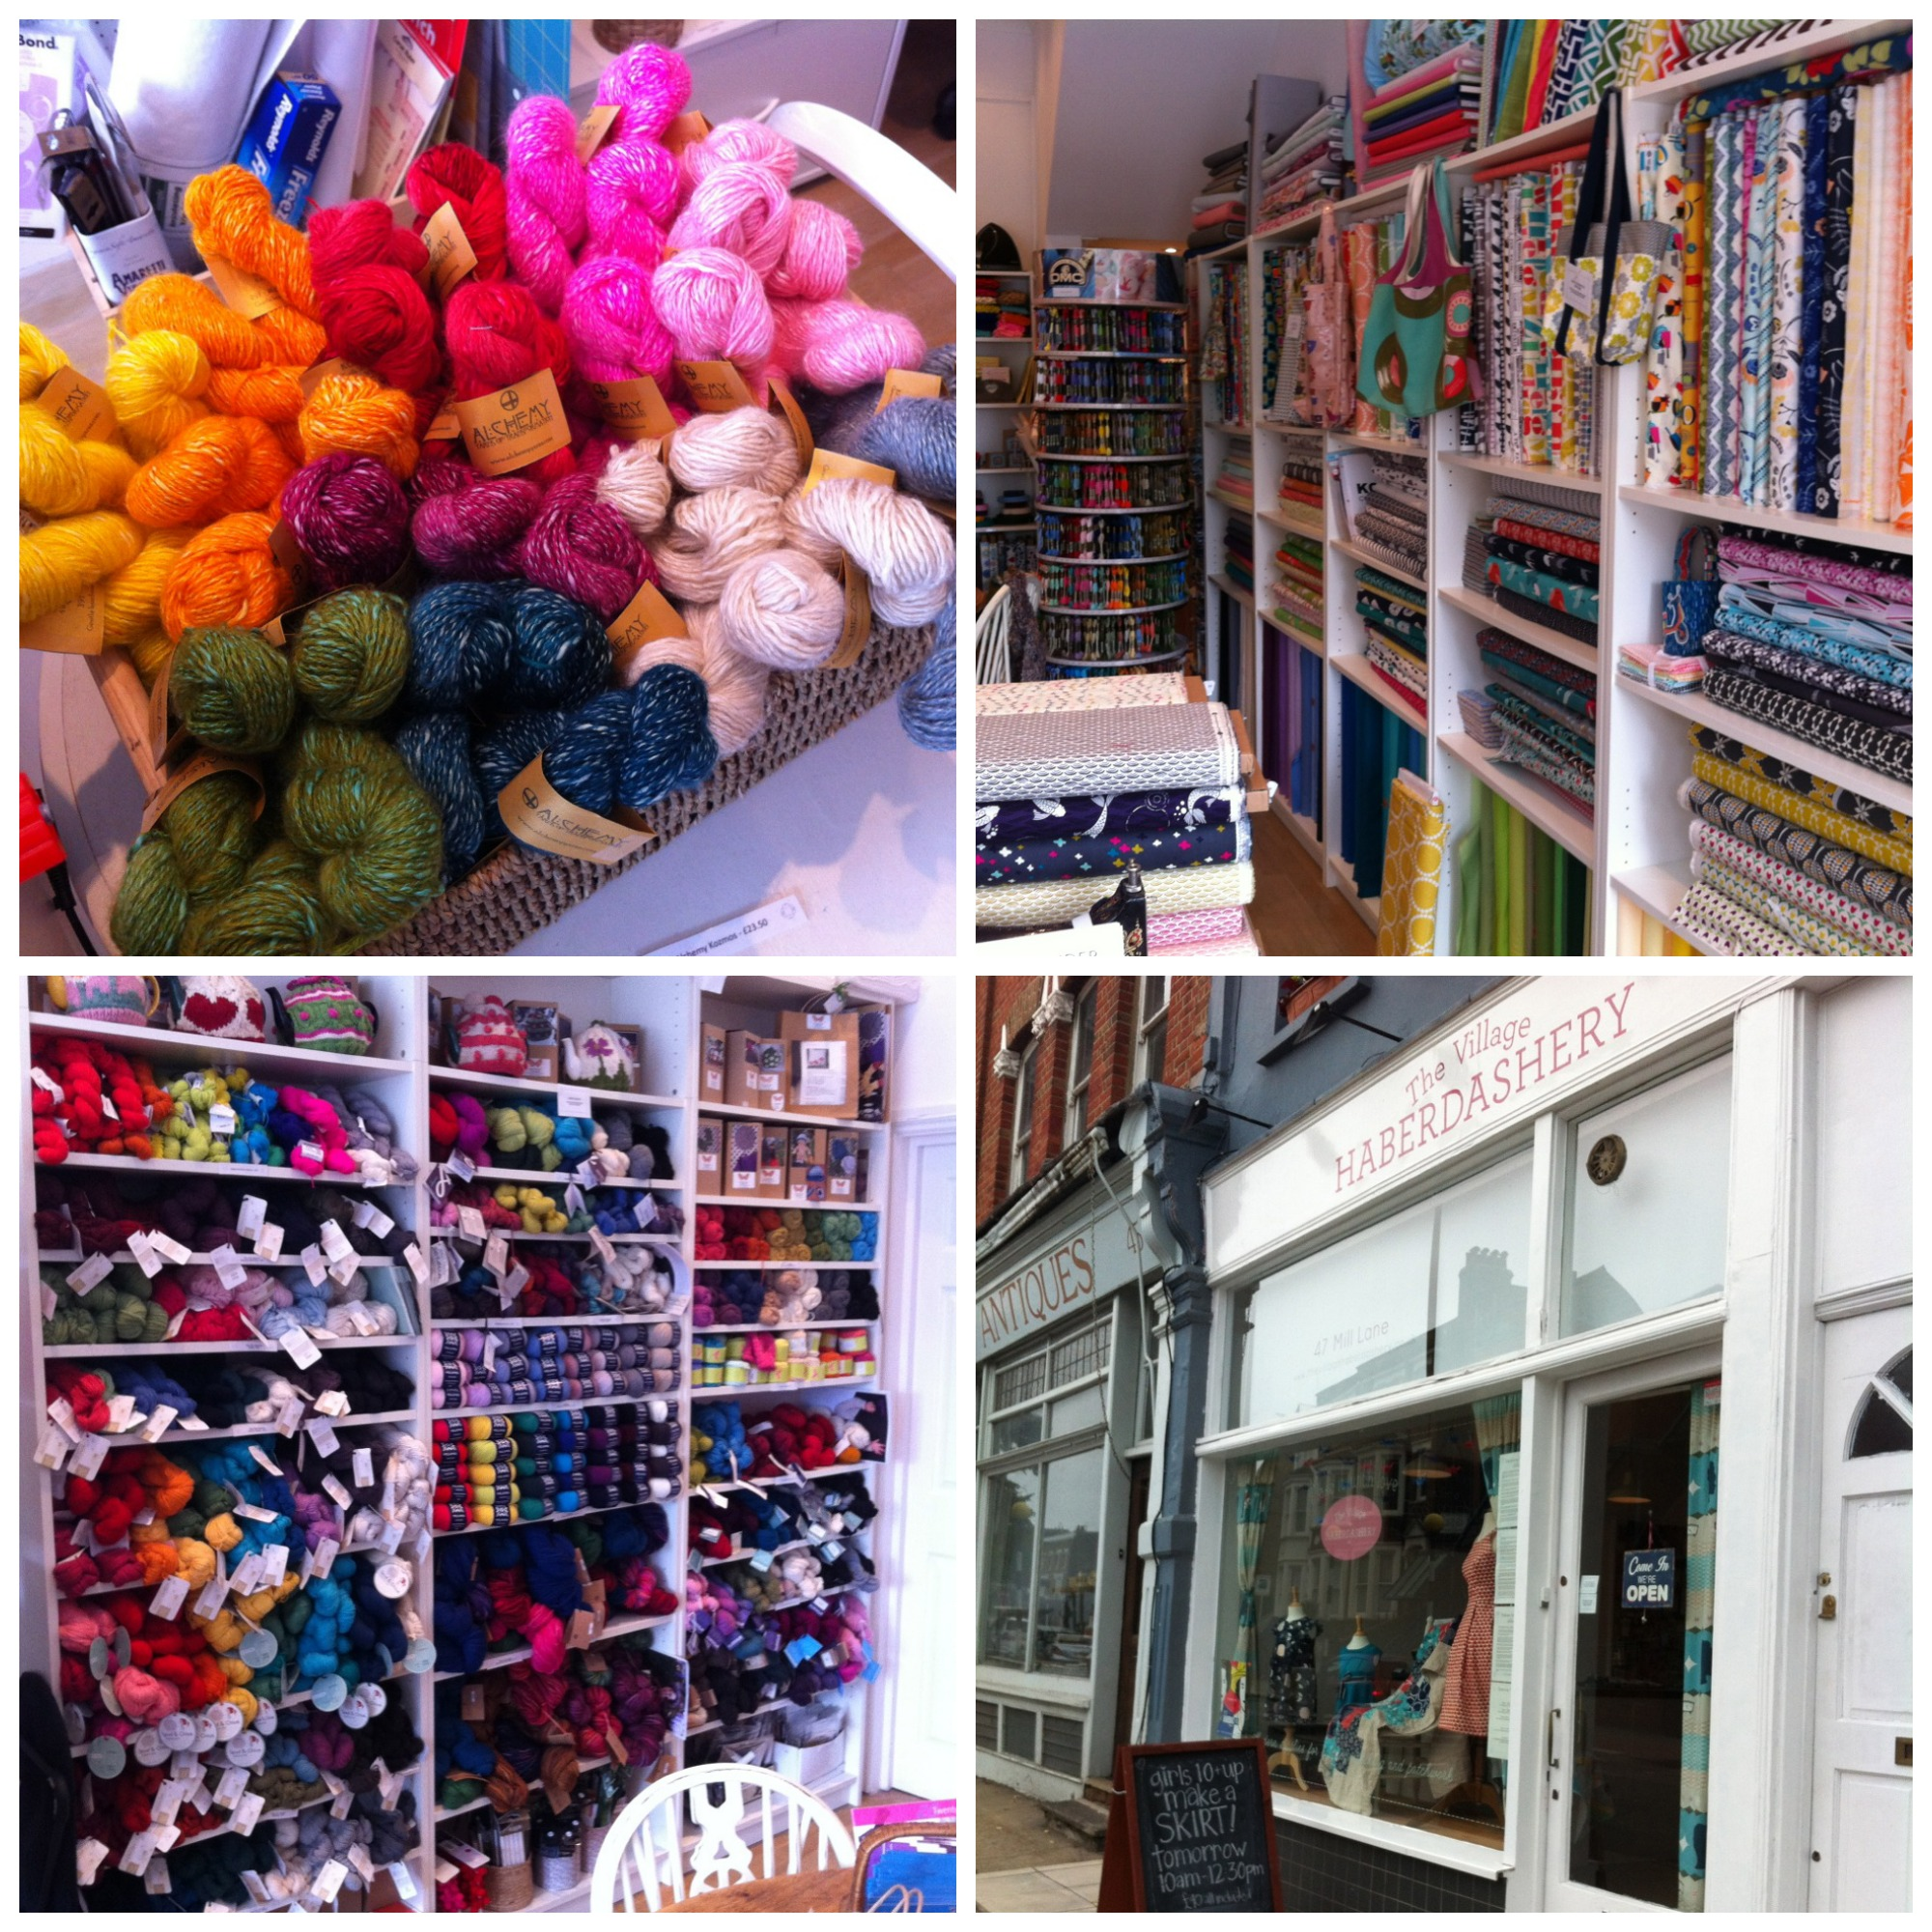 So much colour on display at The Village Haberdashery!